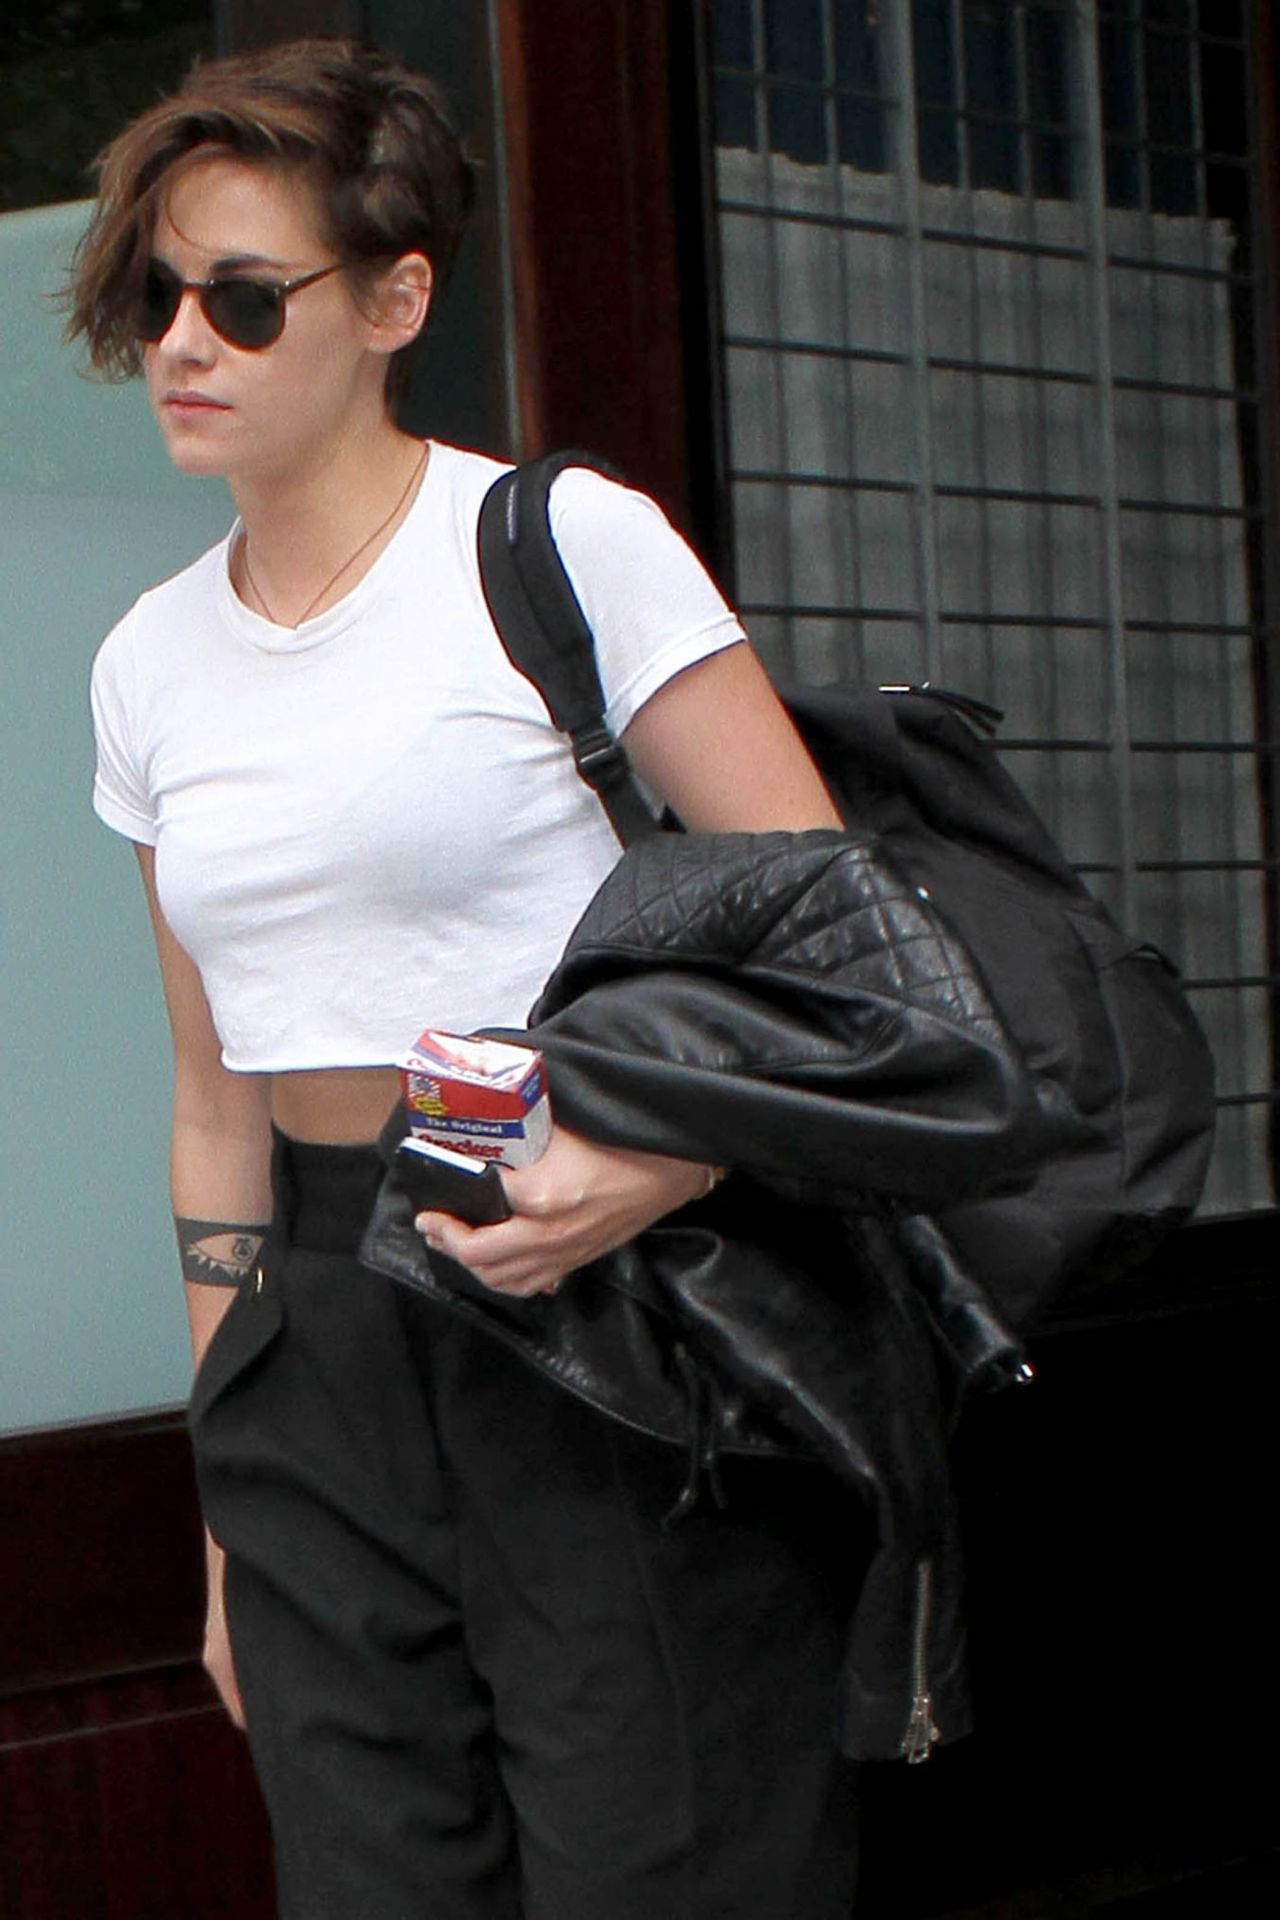 Kristen Stewart Street Style - Leaving Her Hotel in NYC - October 2014